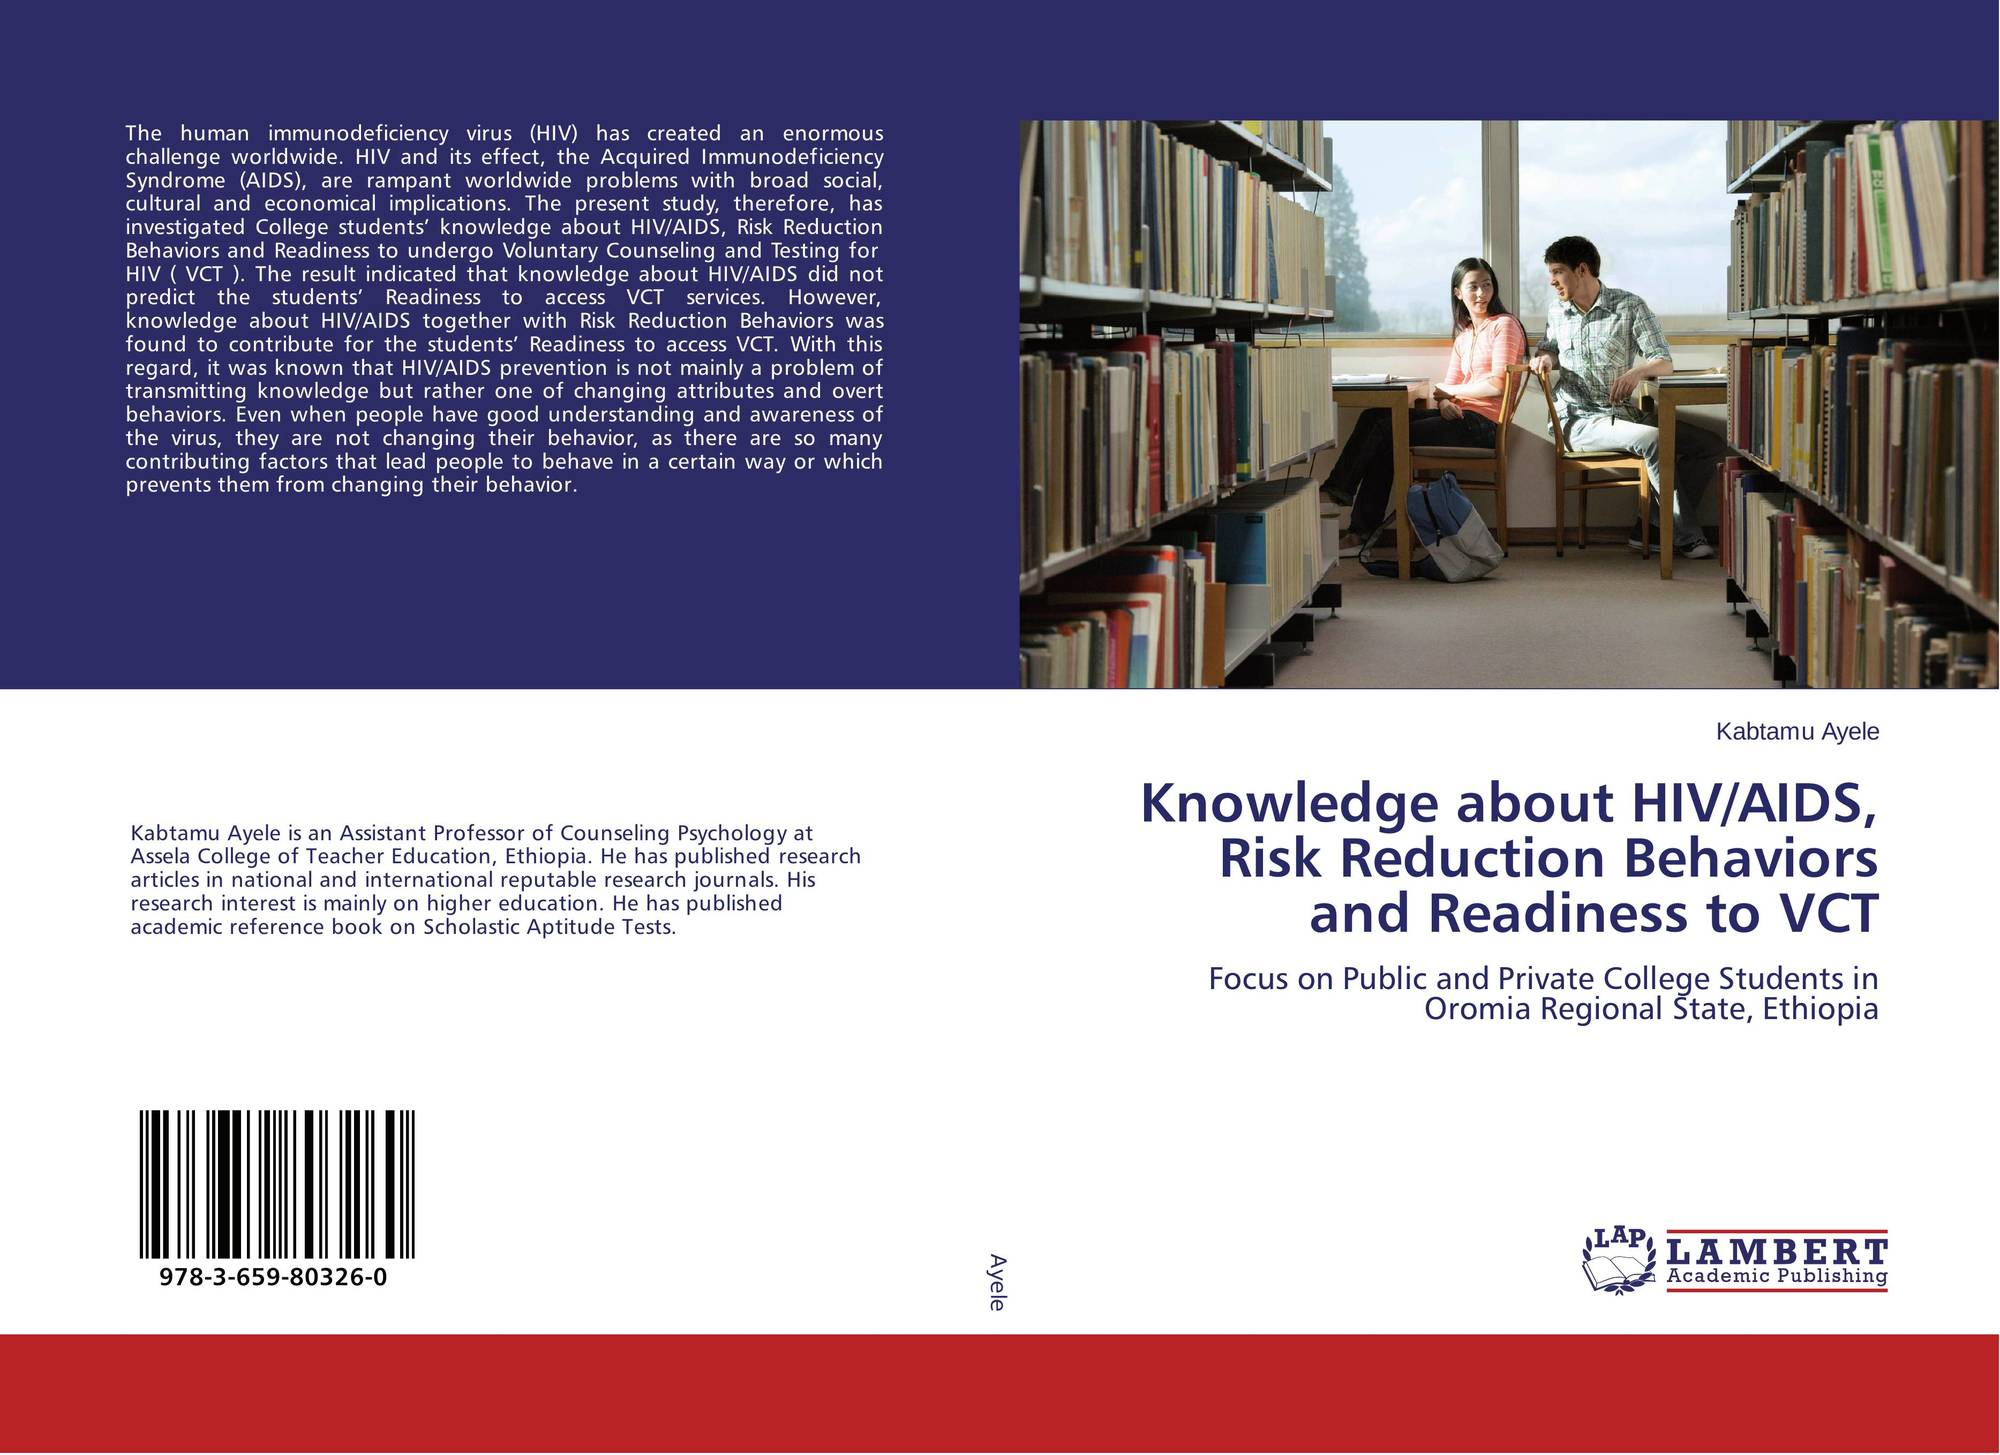 Knowledge about HIV/AIDS, Risk Reduction Behaviors and